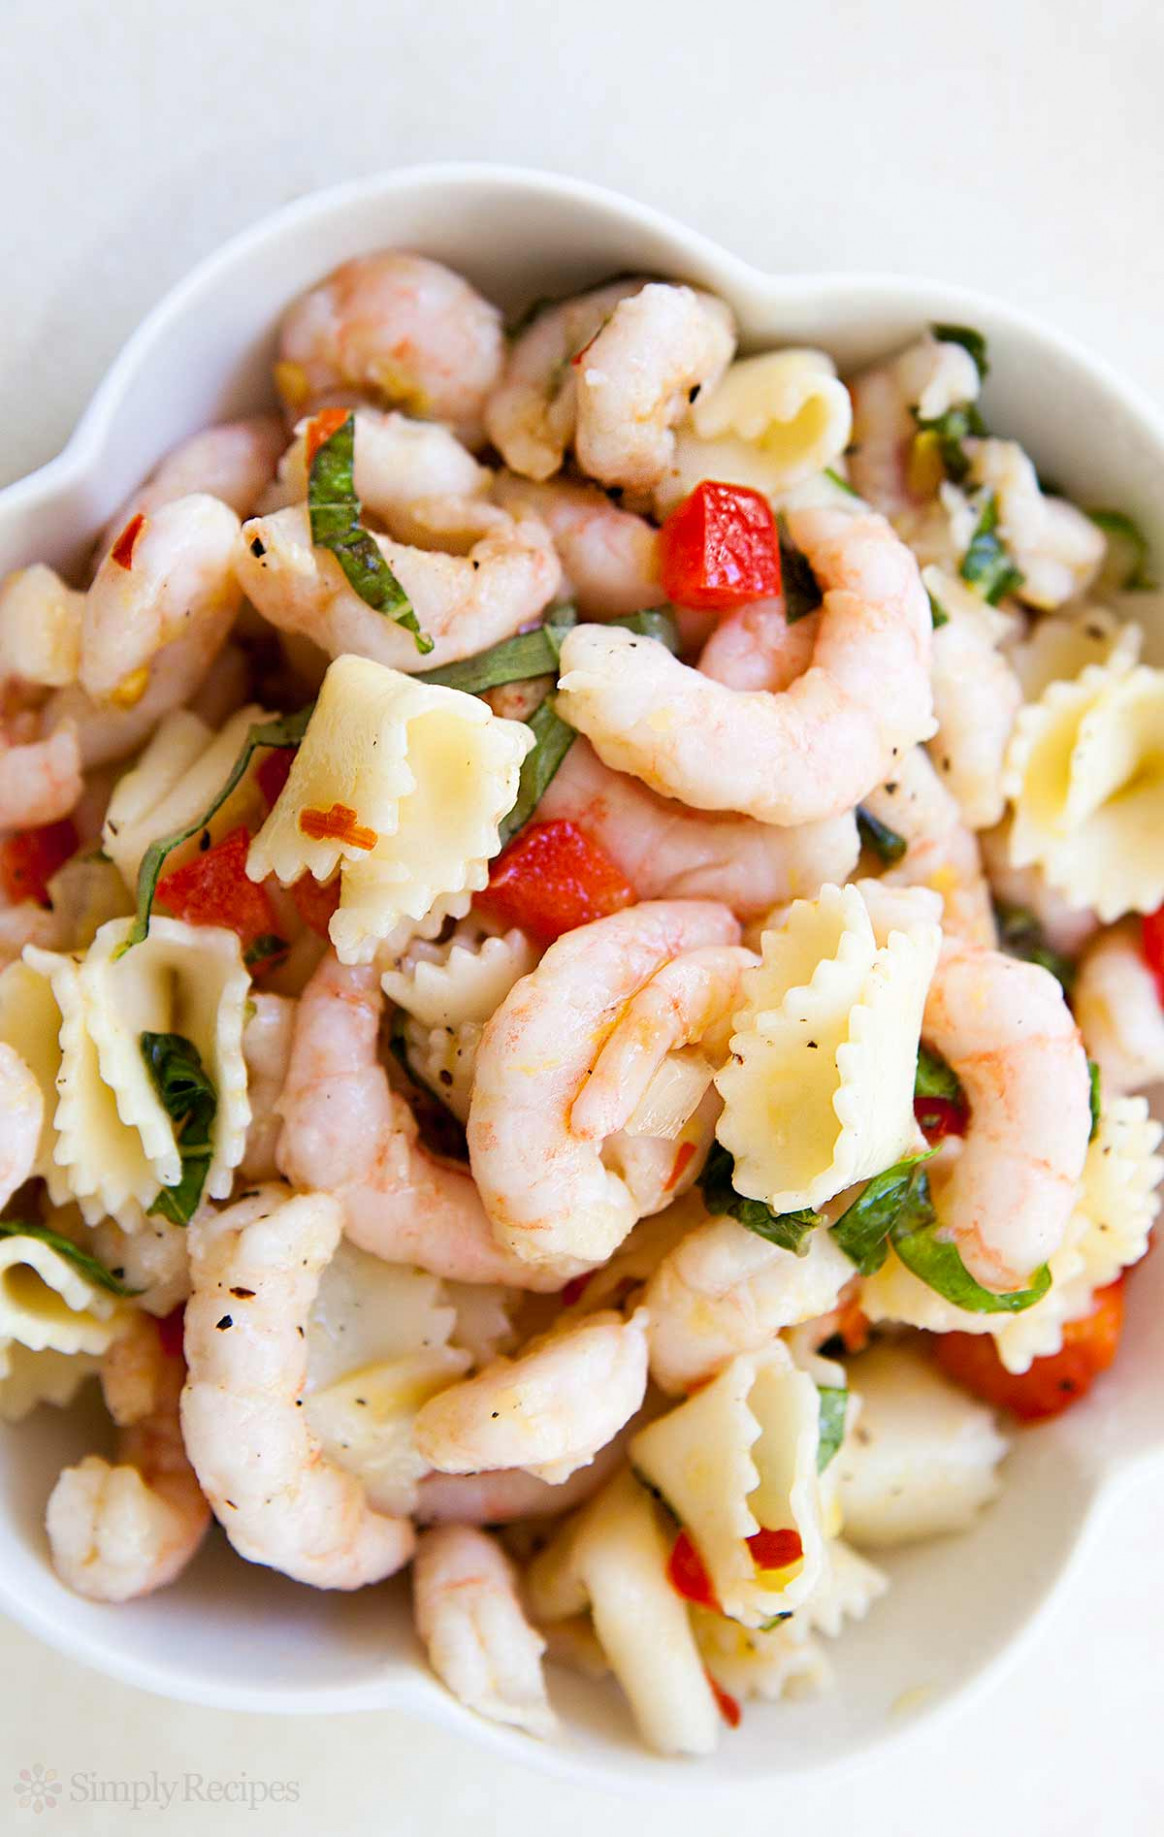 Shrimp Pasta Salad Recipe | SimplyRecipes.com